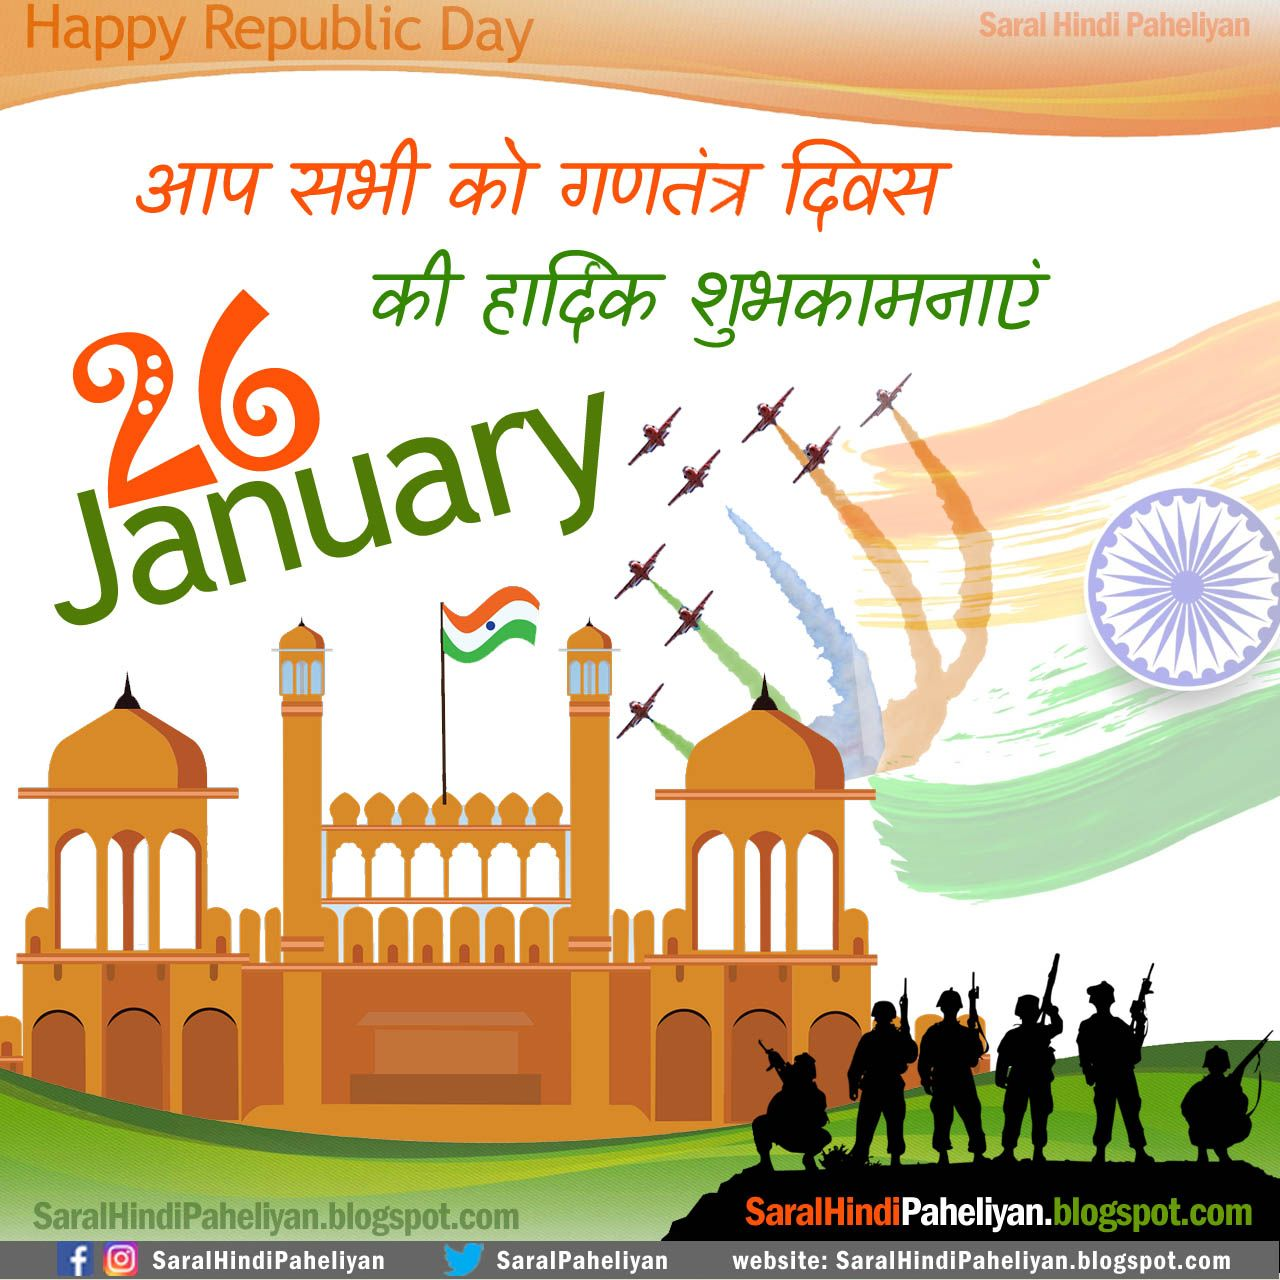 26 January Hindi Sms In Hindi Messages Wish Friend And Family With Best Collection Of Republ Happy Republic Day Wallpaper Happy Republic Day 2017 Republic Day